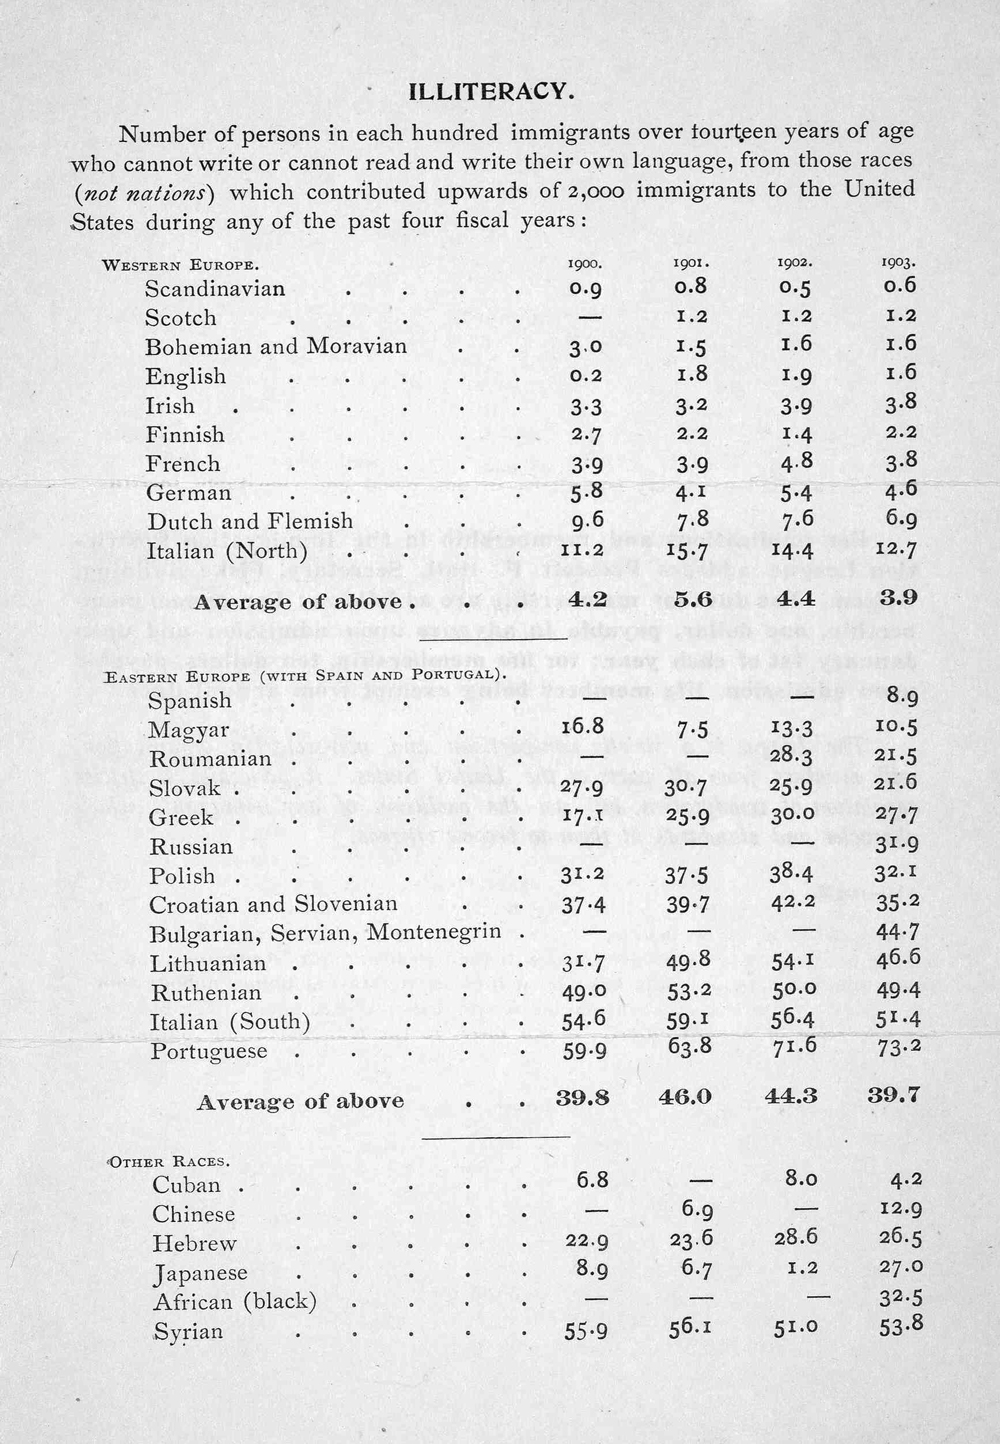 This source from 1903 highlights the number of immigrants coming to the United States who were illiterate in their native language in reading and writing.